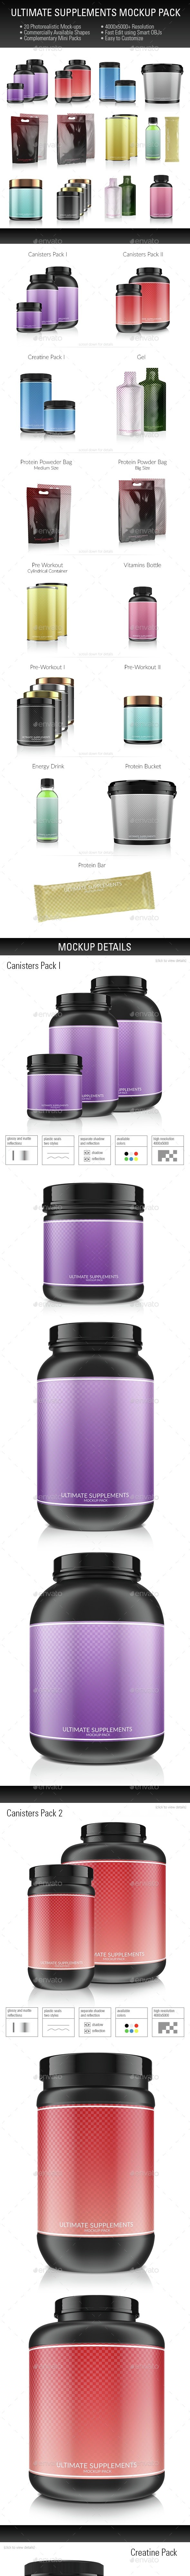 Ultimate Supplements Mockup Pack - Miscellaneous Packaging